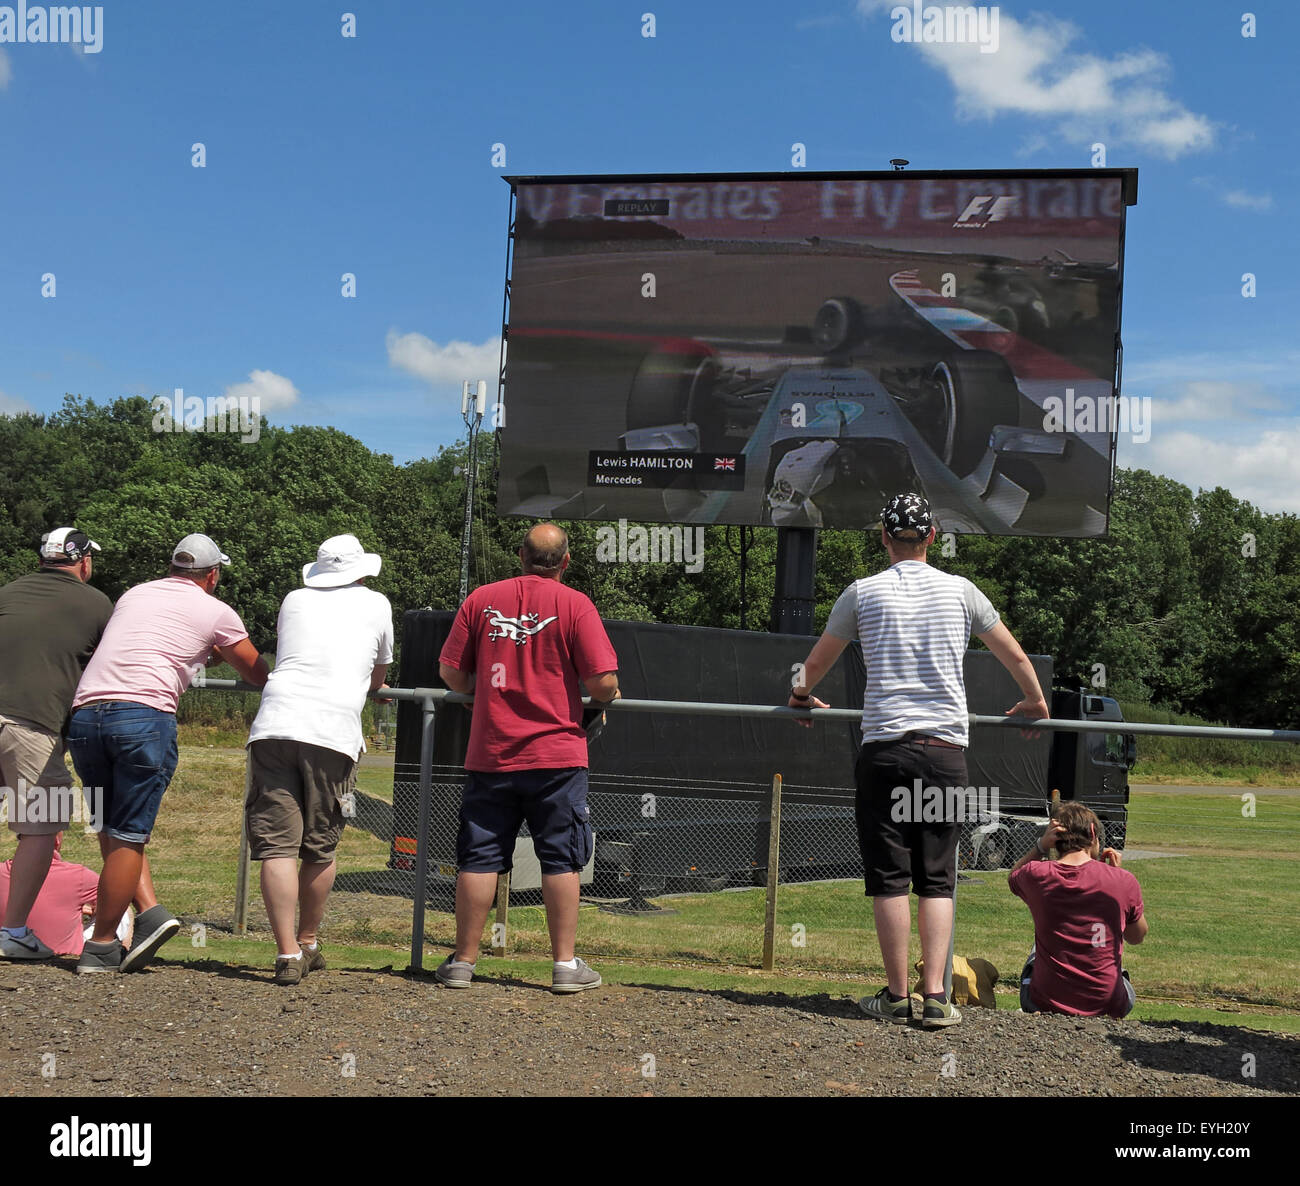 Formula,One,Great,Britain,sport,motor,motorsport,summer,car,cars,crowd,fans,racing,race,sun,fans,watching,Lewis,Hamilton,qualifying.on,a,large,screen,TV,Video,men,people,Lewis Hamilton,GoTonySmith,Buy Pictures of,Buy Images Of